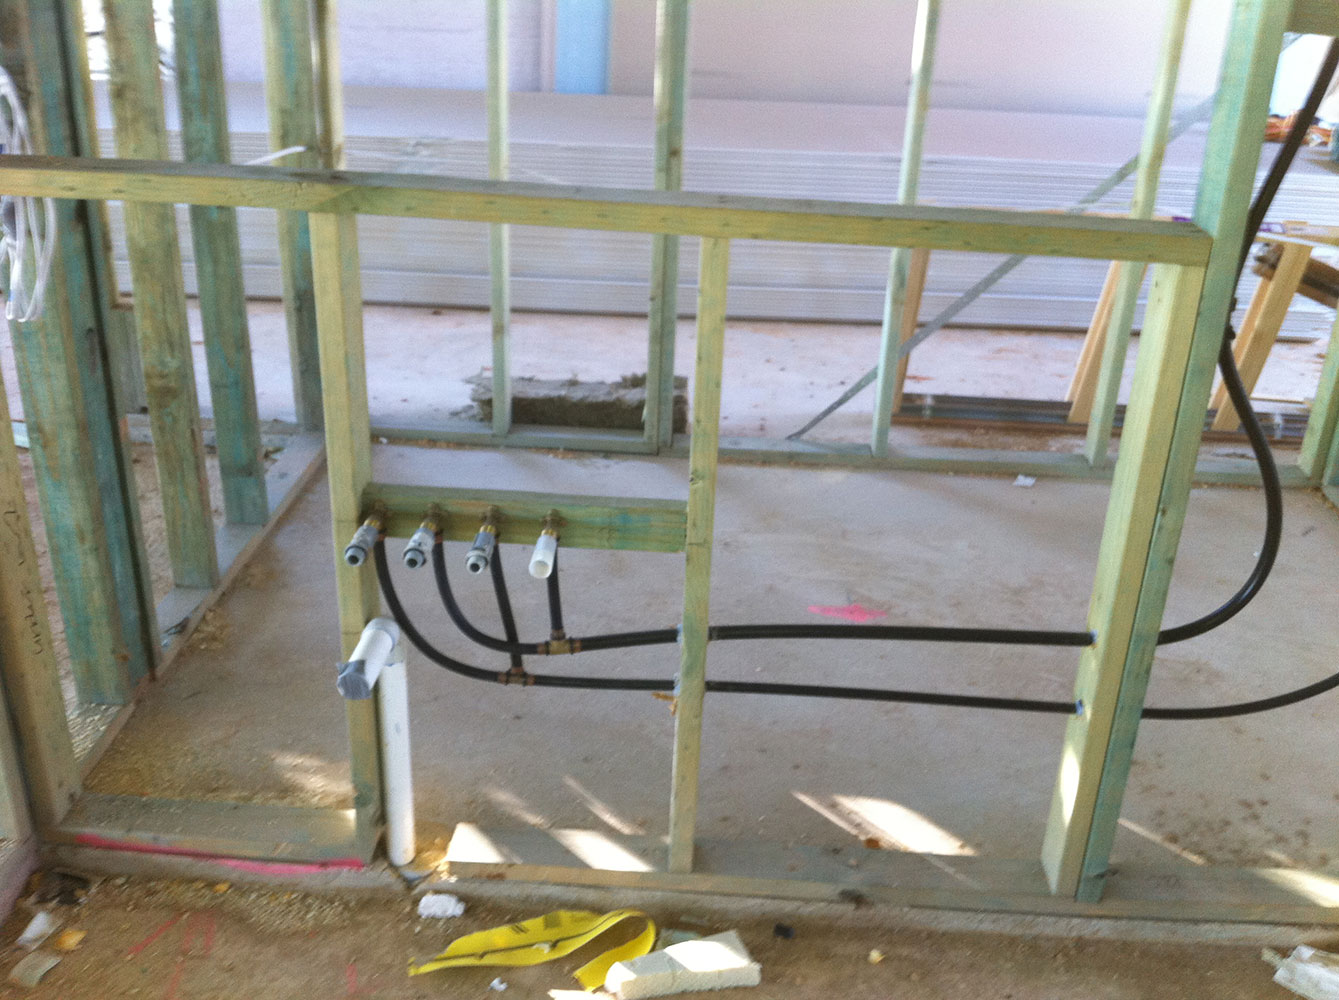 Service Rough-in on Structural Framing with Excess of Clips & Silicone to Eliminate Water Hammer after Sheeting